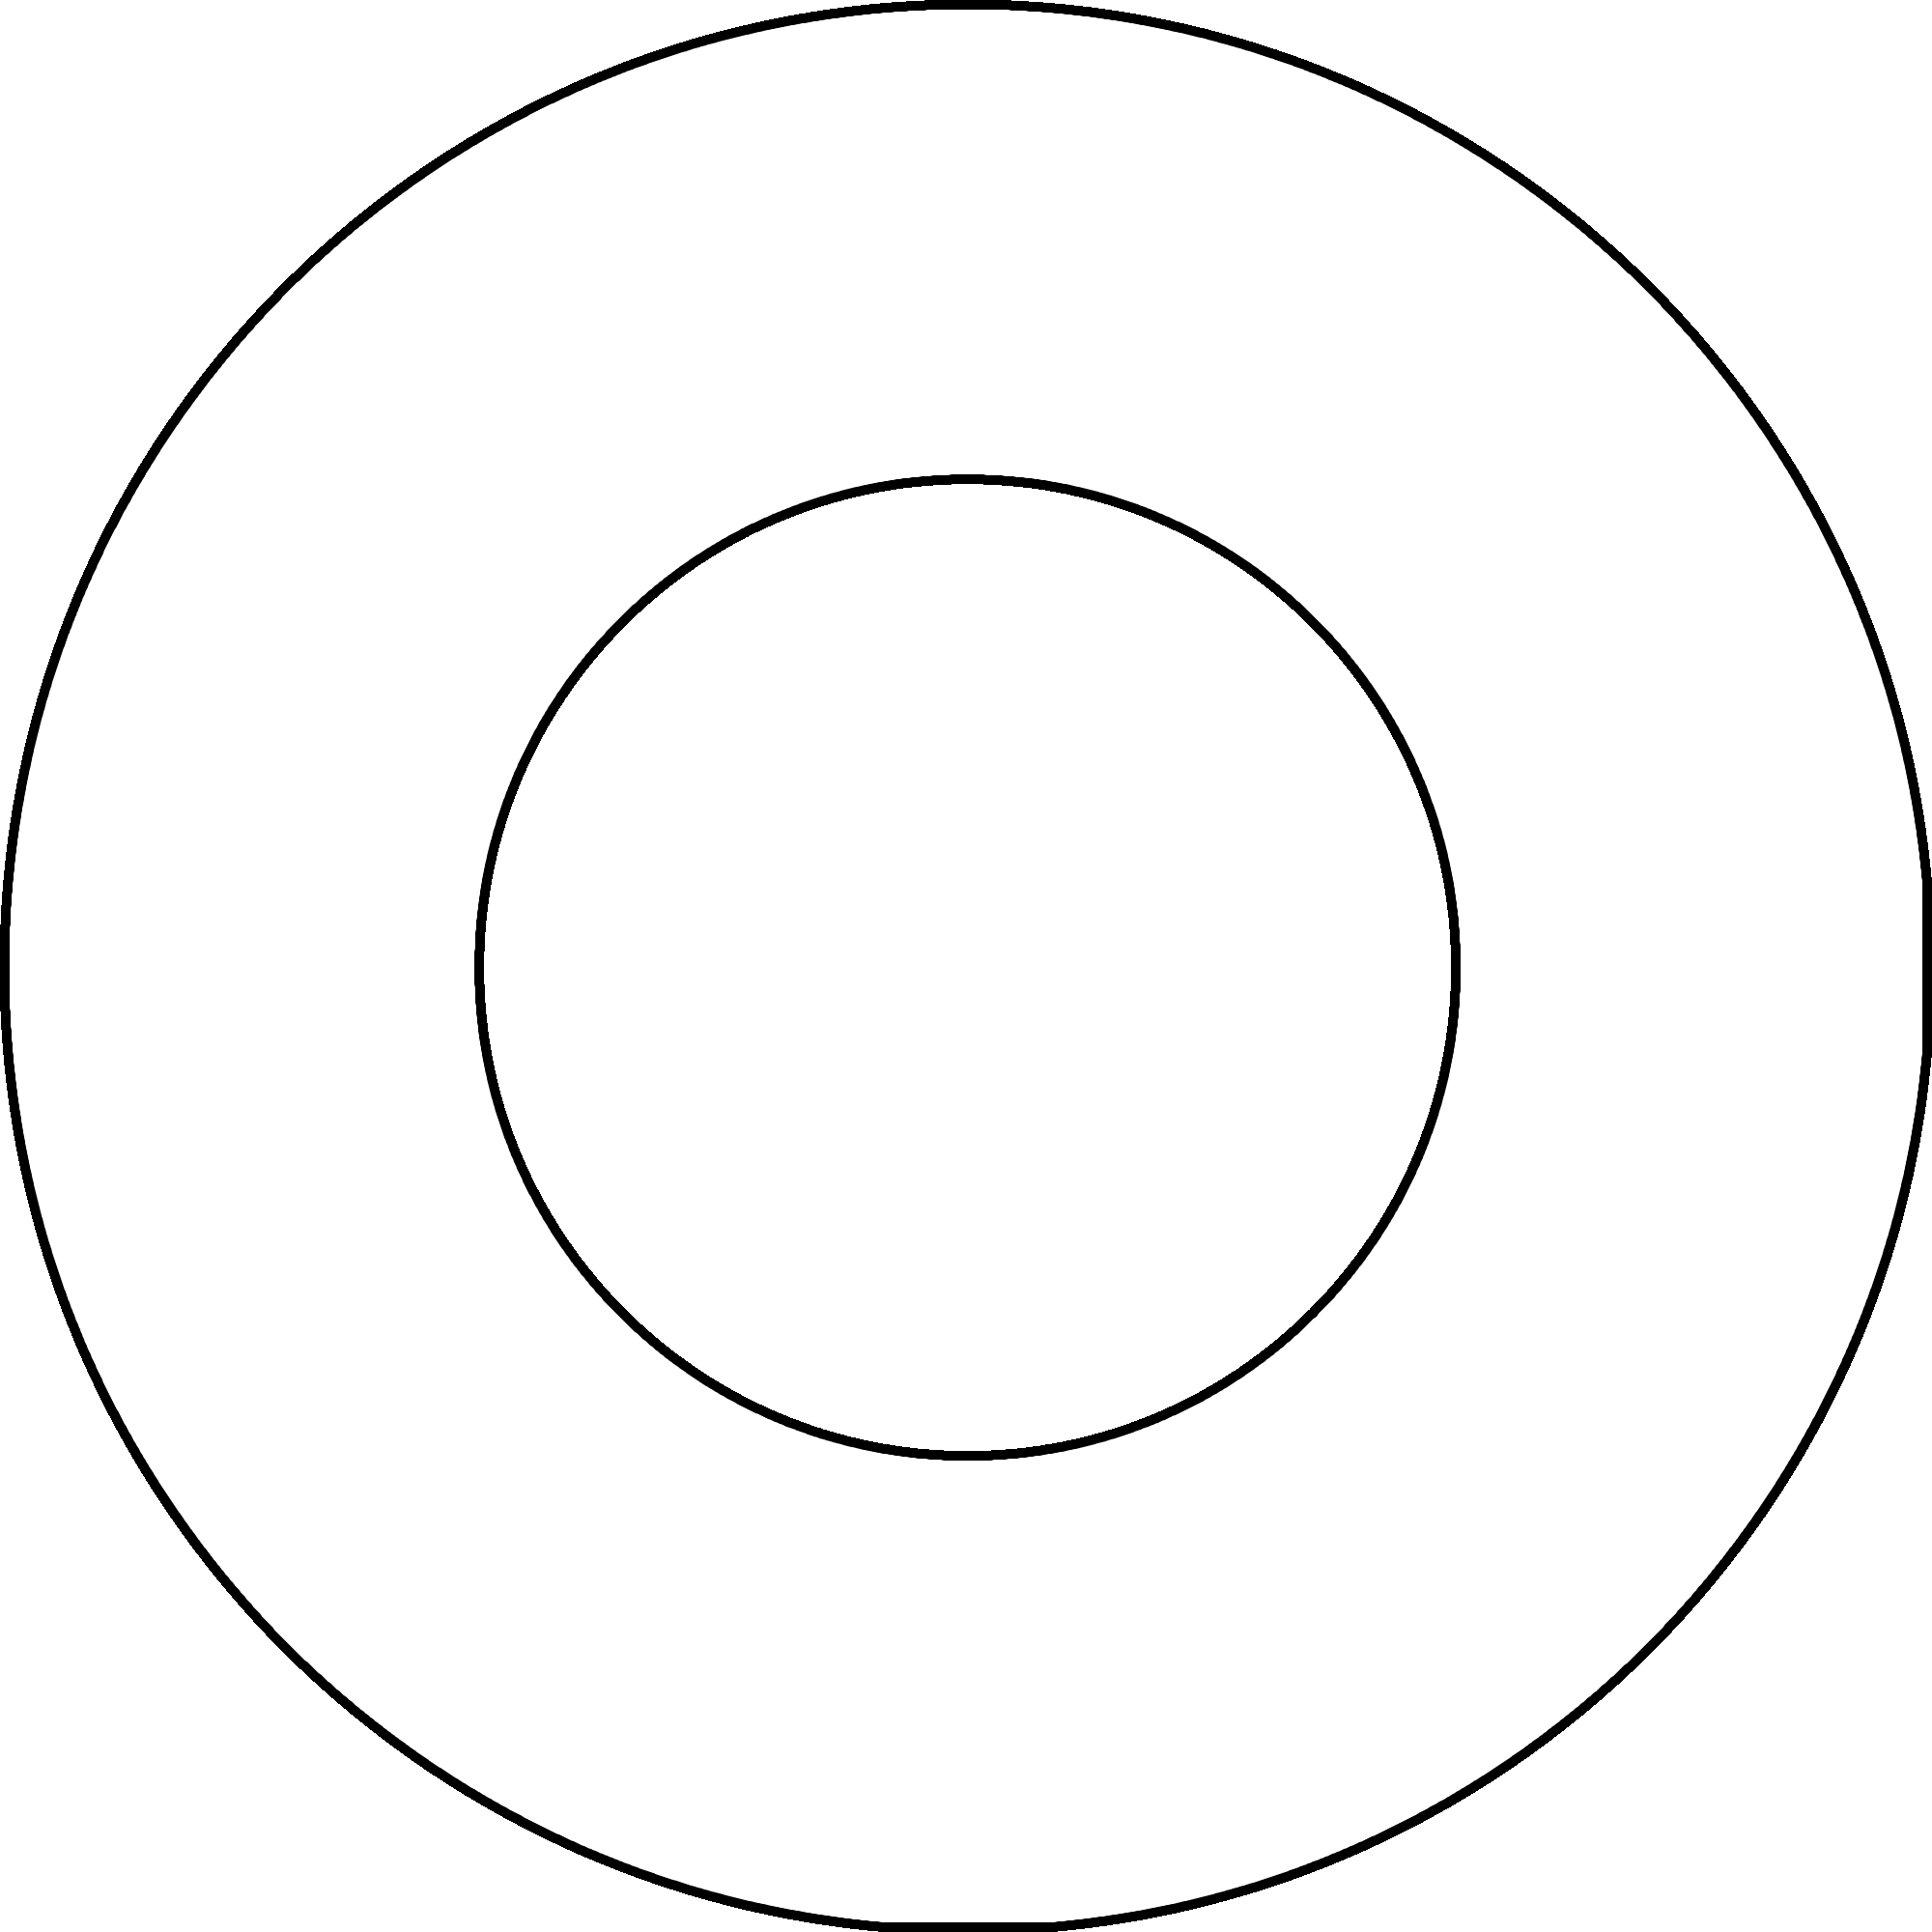 Black circle png transparent. File white wikimedia commons